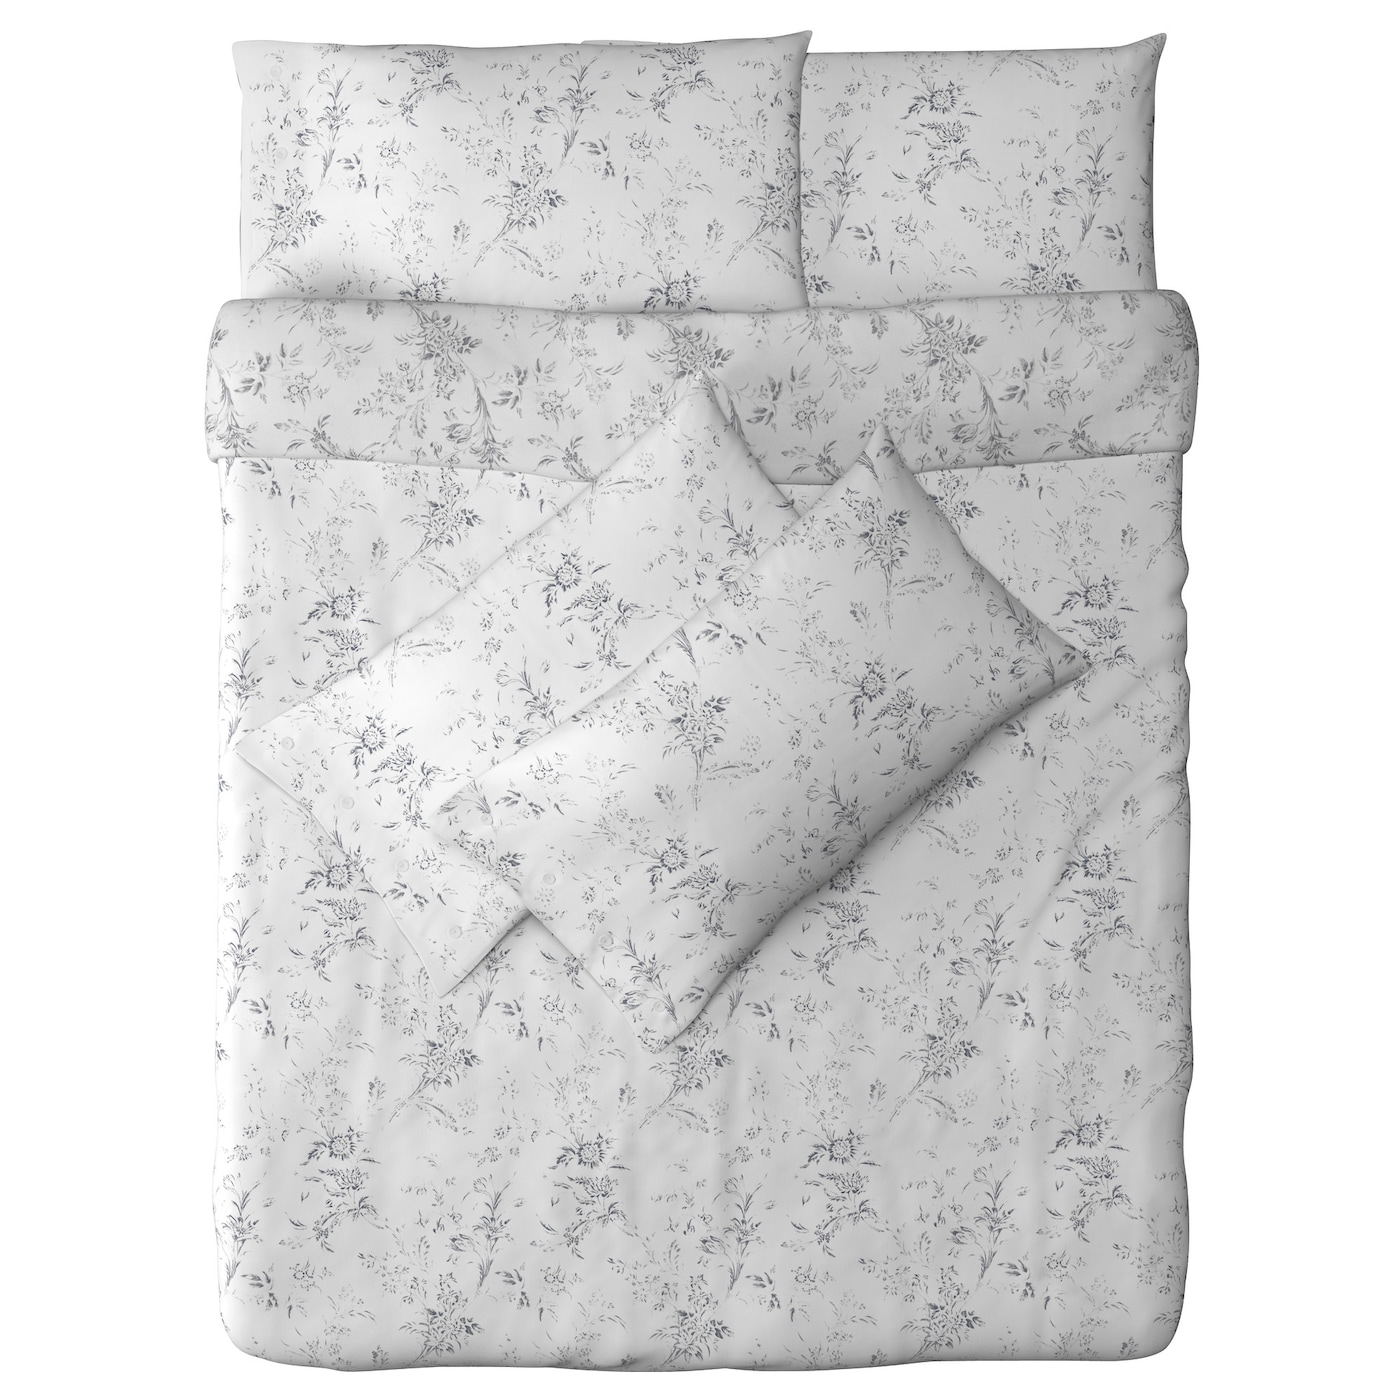 alvine kvist quilt cover and 4 pillowcases white grey 200x200 50x80 cm ikea. Black Bedroom Furniture Sets. Home Design Ideas